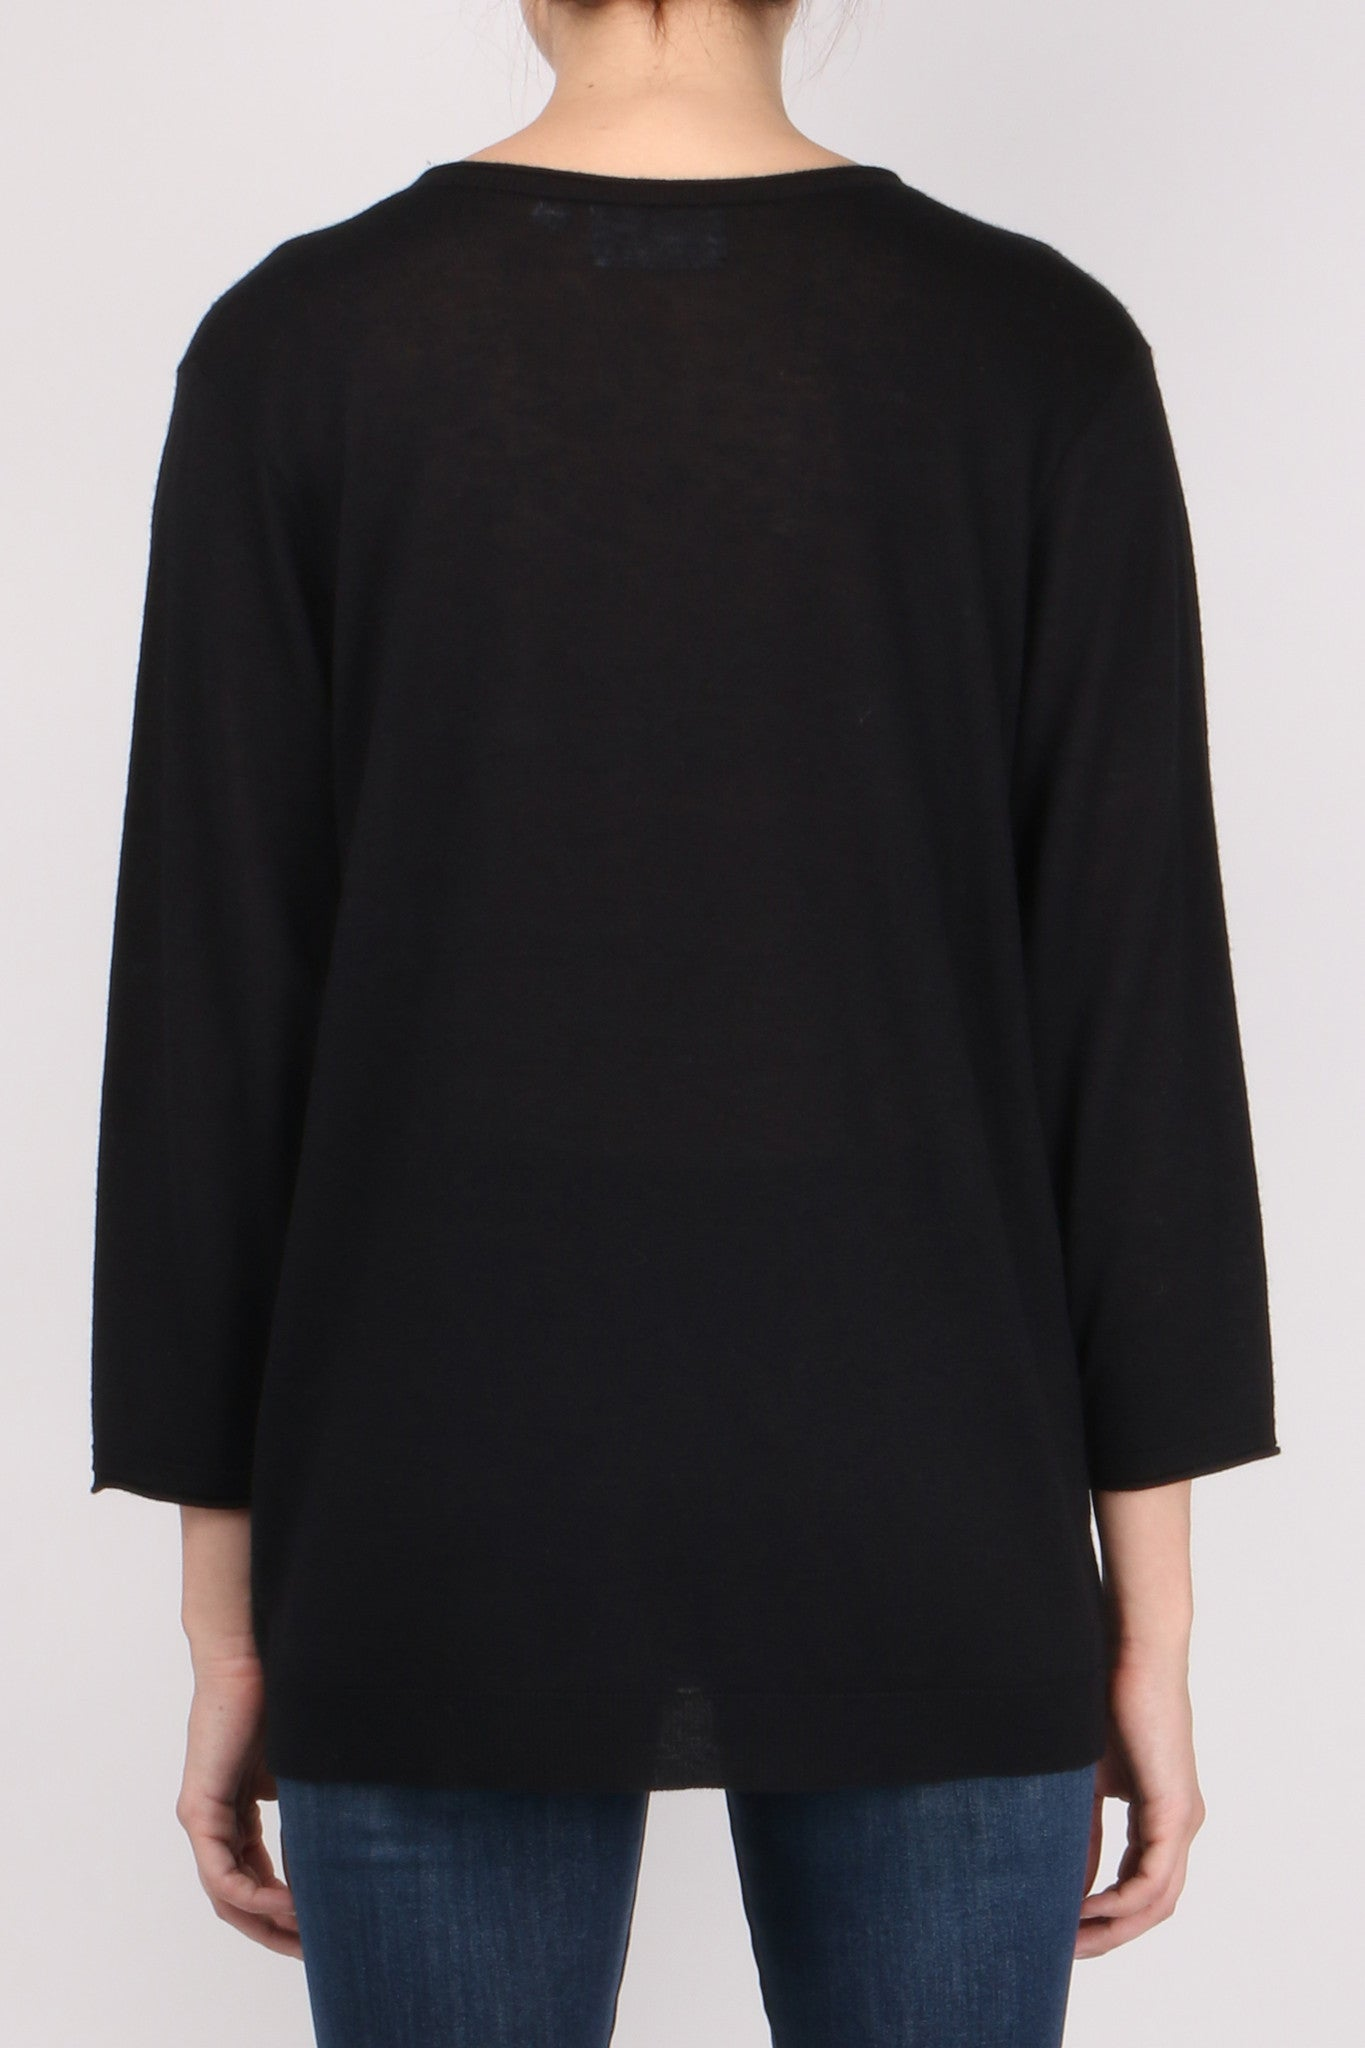 Sita Murt 3/4 Soft Sweater